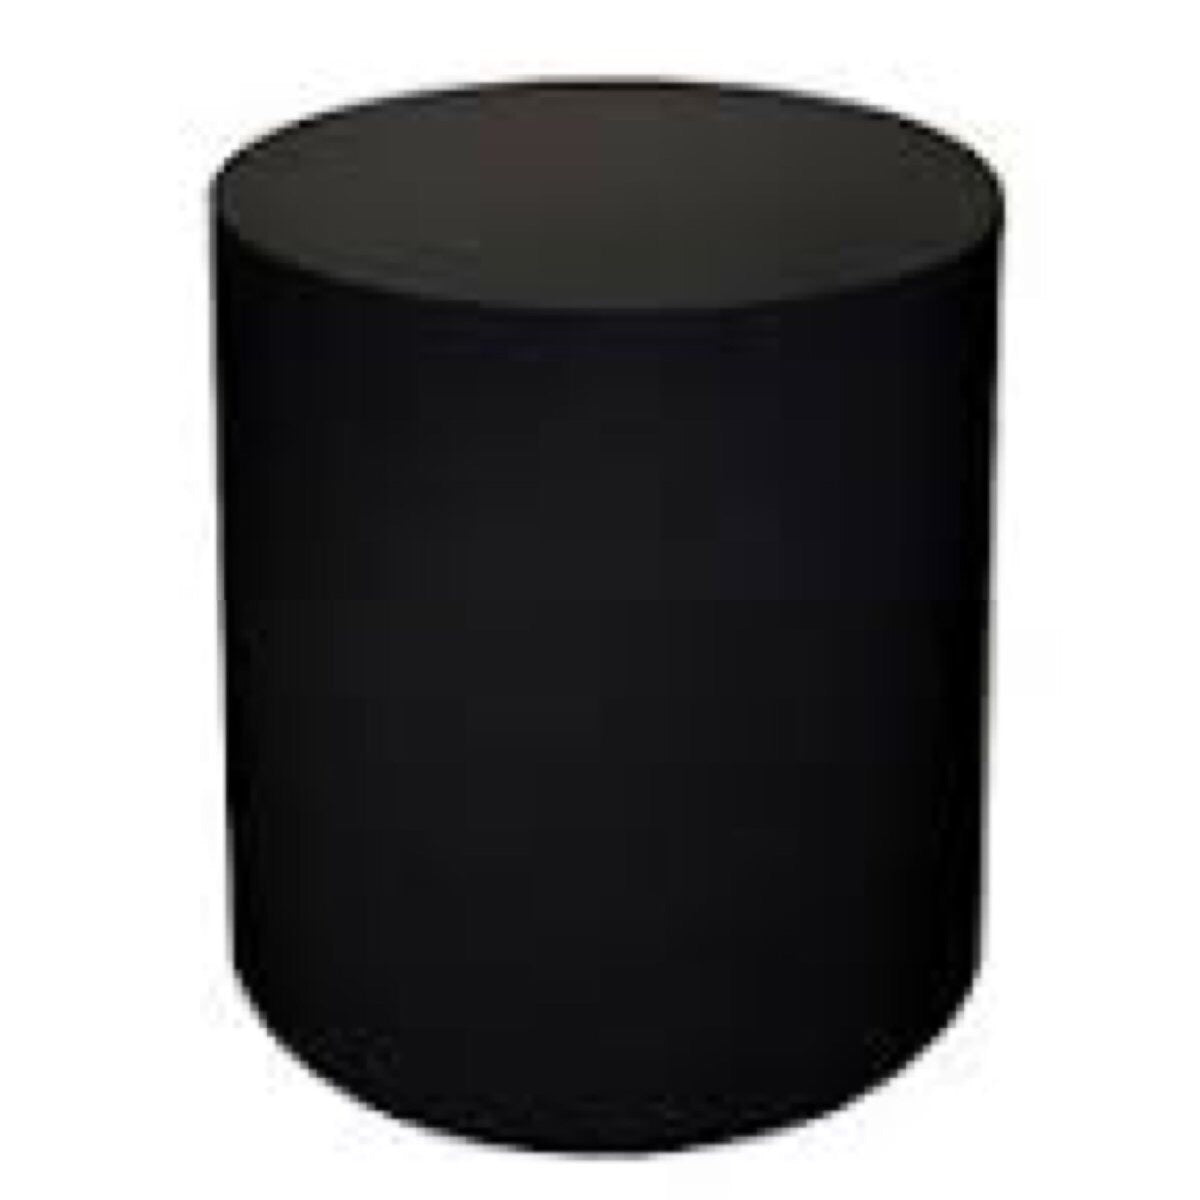 Black Cylinder Table (4 Feet Tall)